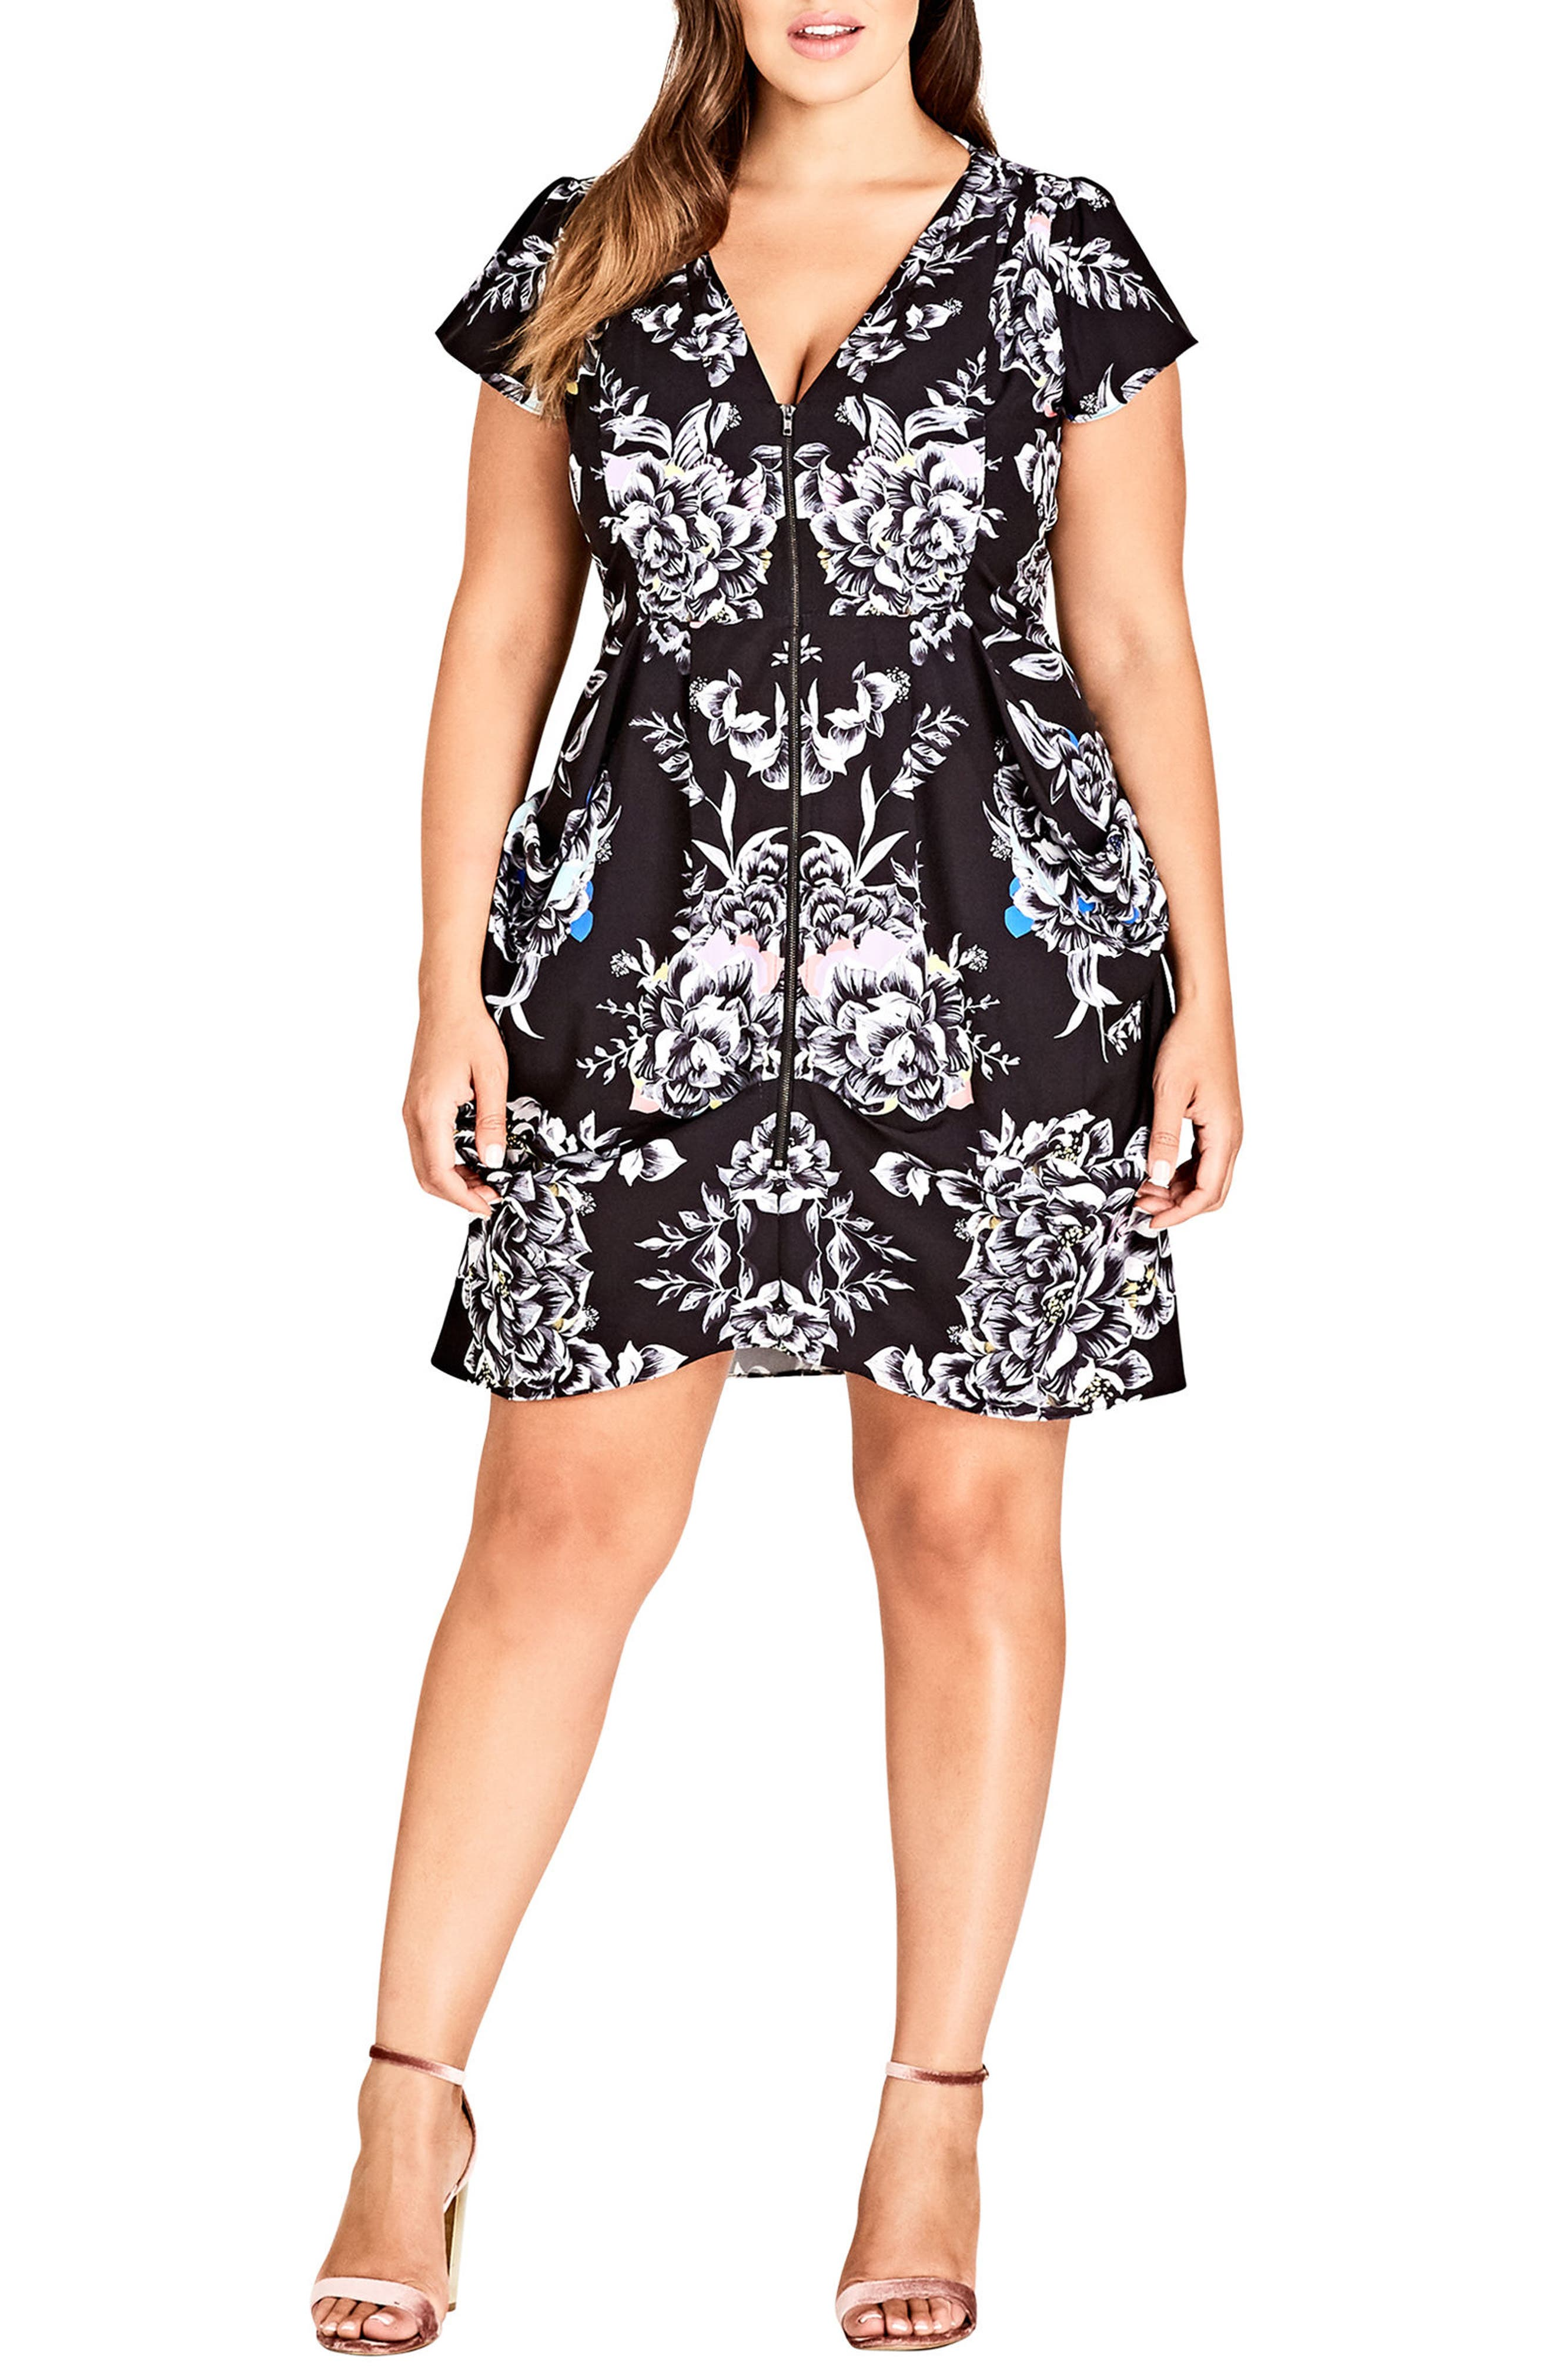 Mirror Power Dress,                         Main,                         color, 001